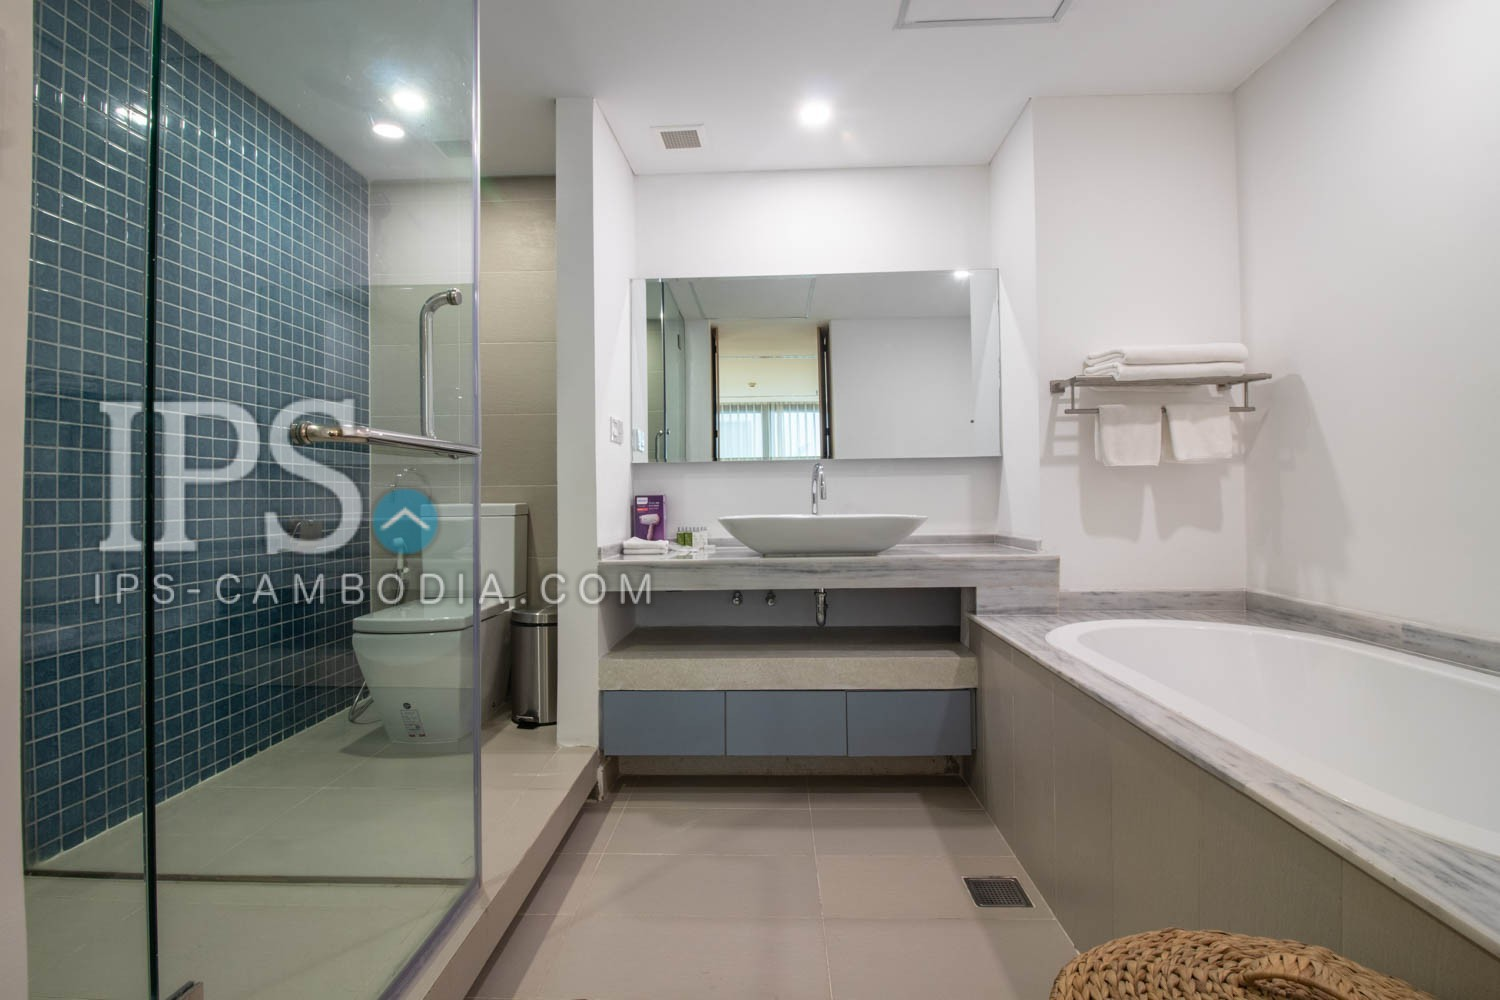 2 Bedrooms Apartment For Rent - Independent Monument Area, Phnom Penh